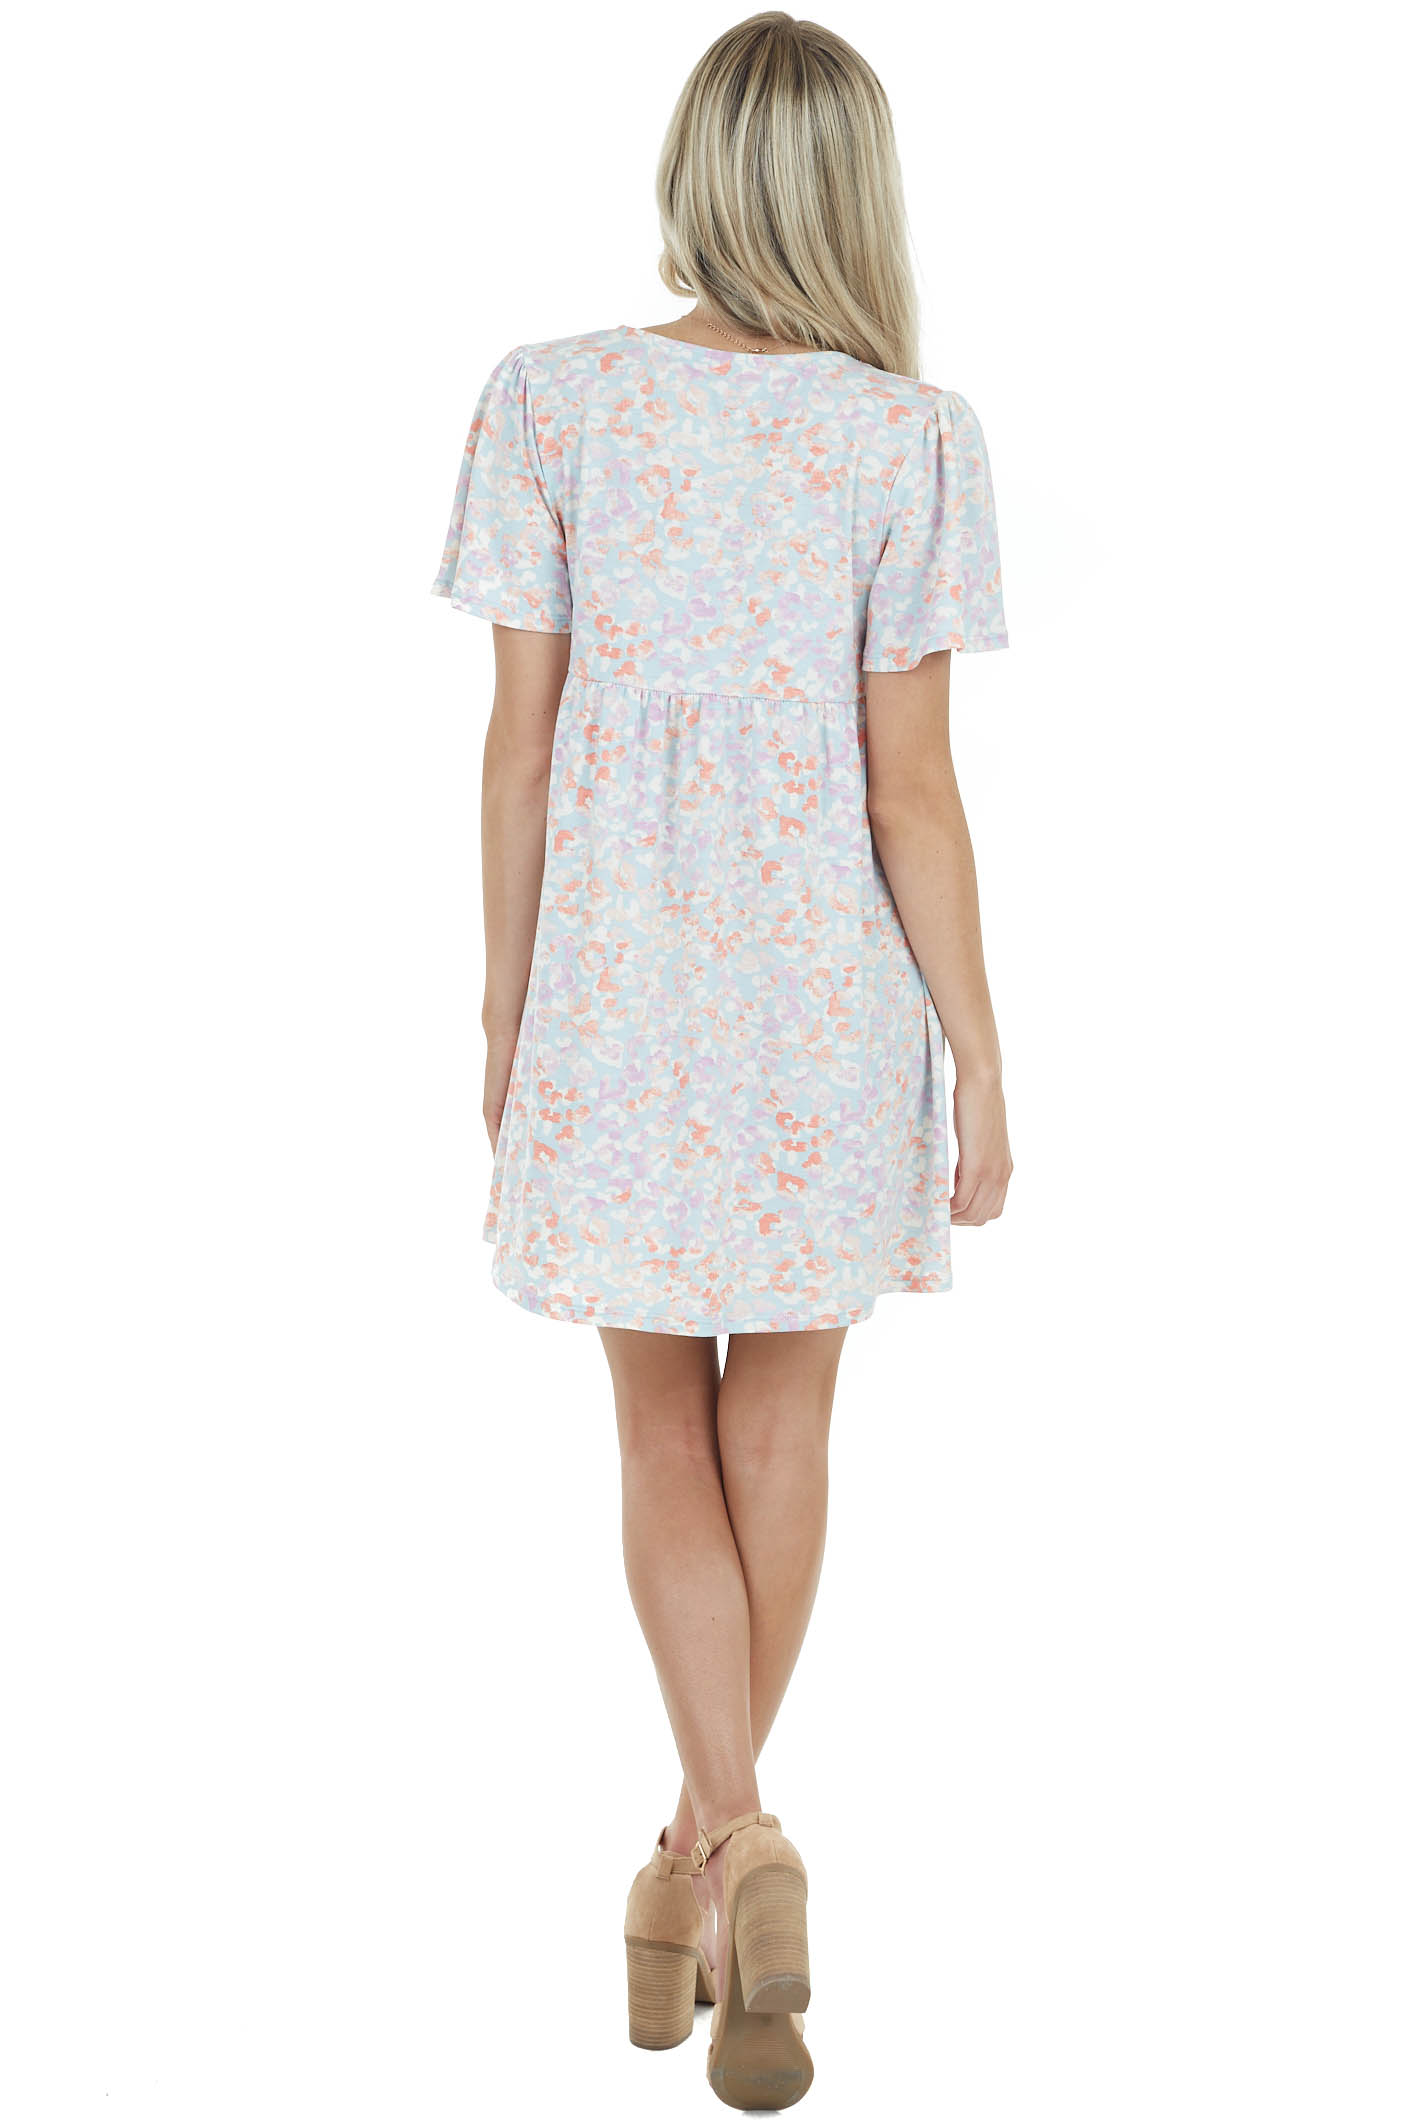 Baby Blue Floral Print Babydoll Dress with Short Sleeves